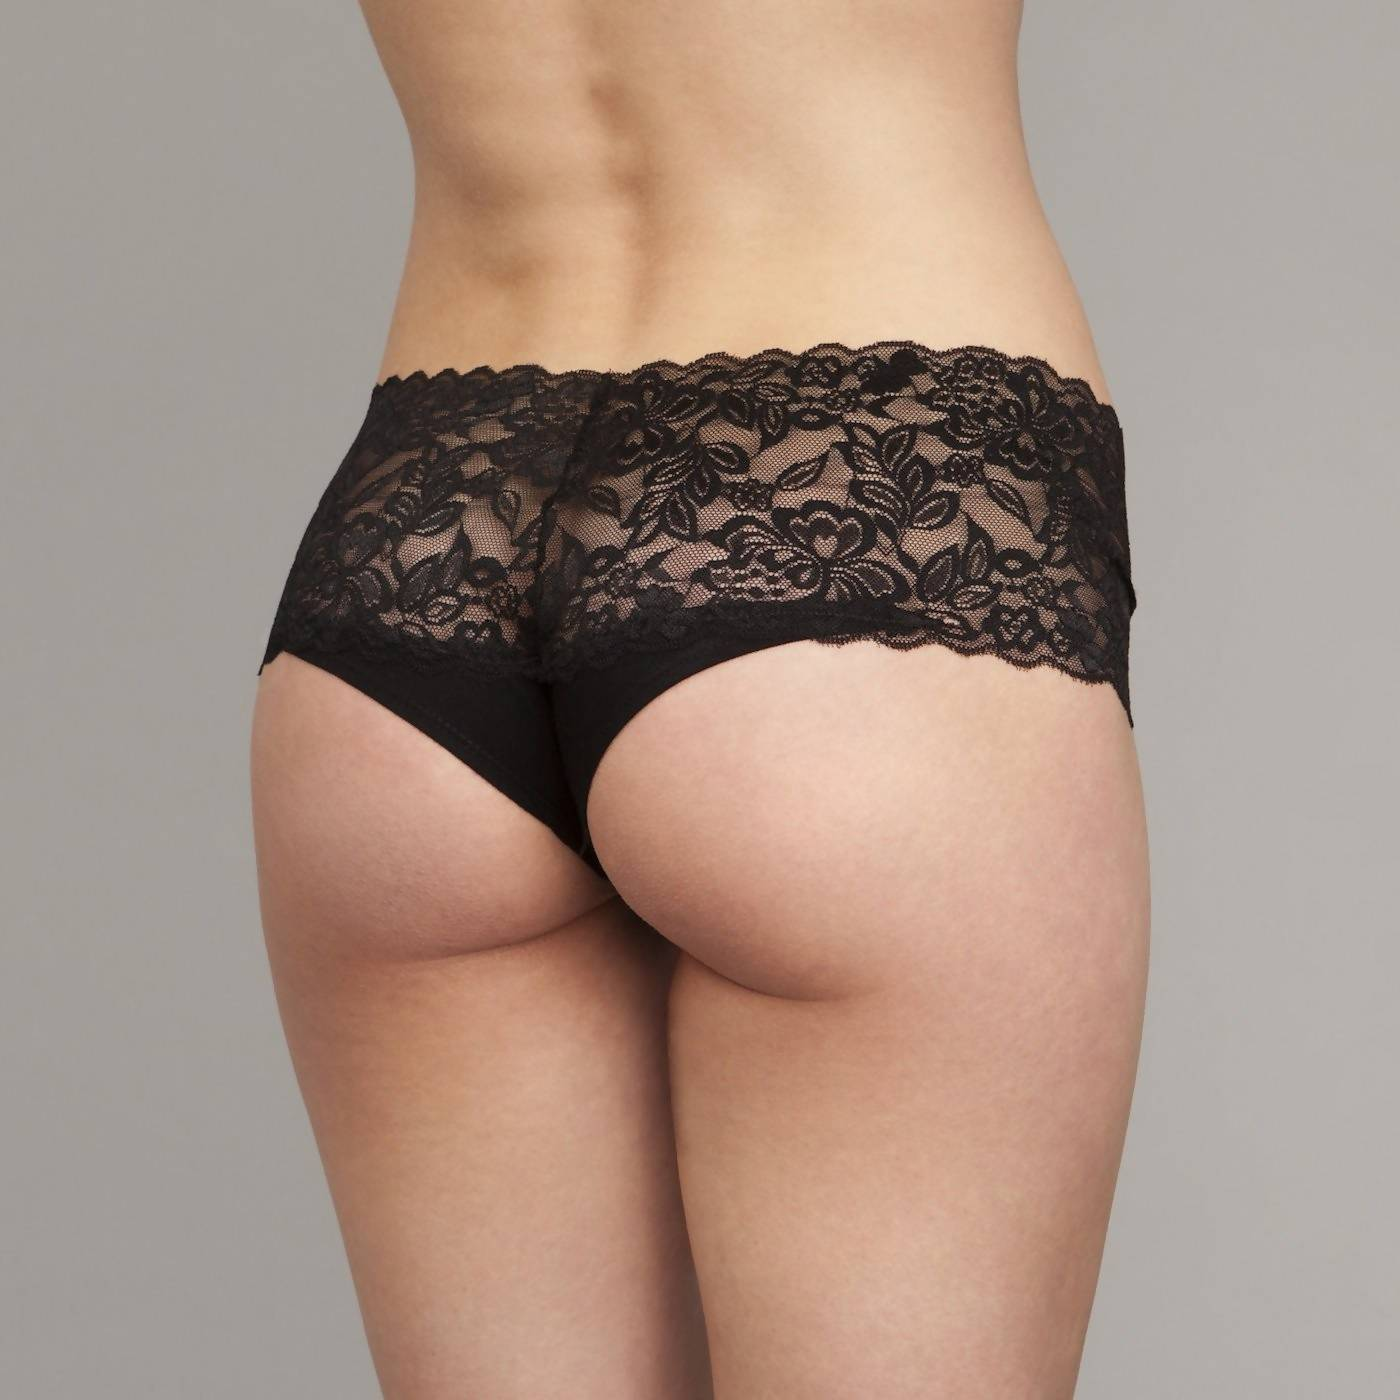 The Kaydee- Wide Lace Brazilian in Black